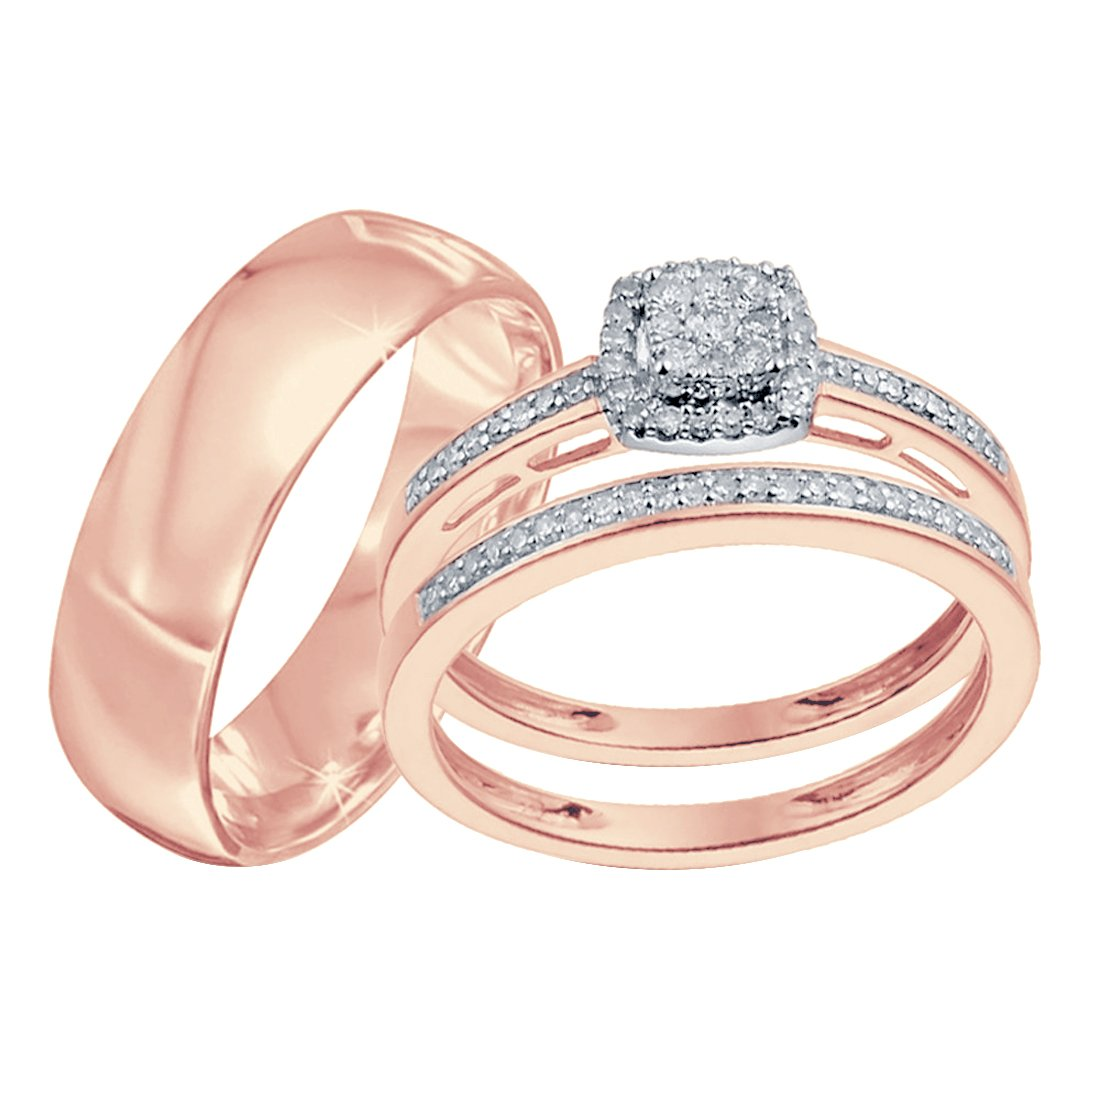 Silvercz Jewels Ladies D/VVS1 Diamond Trio Set Engagement Ring His And Her In 14K Rose Gold Fn